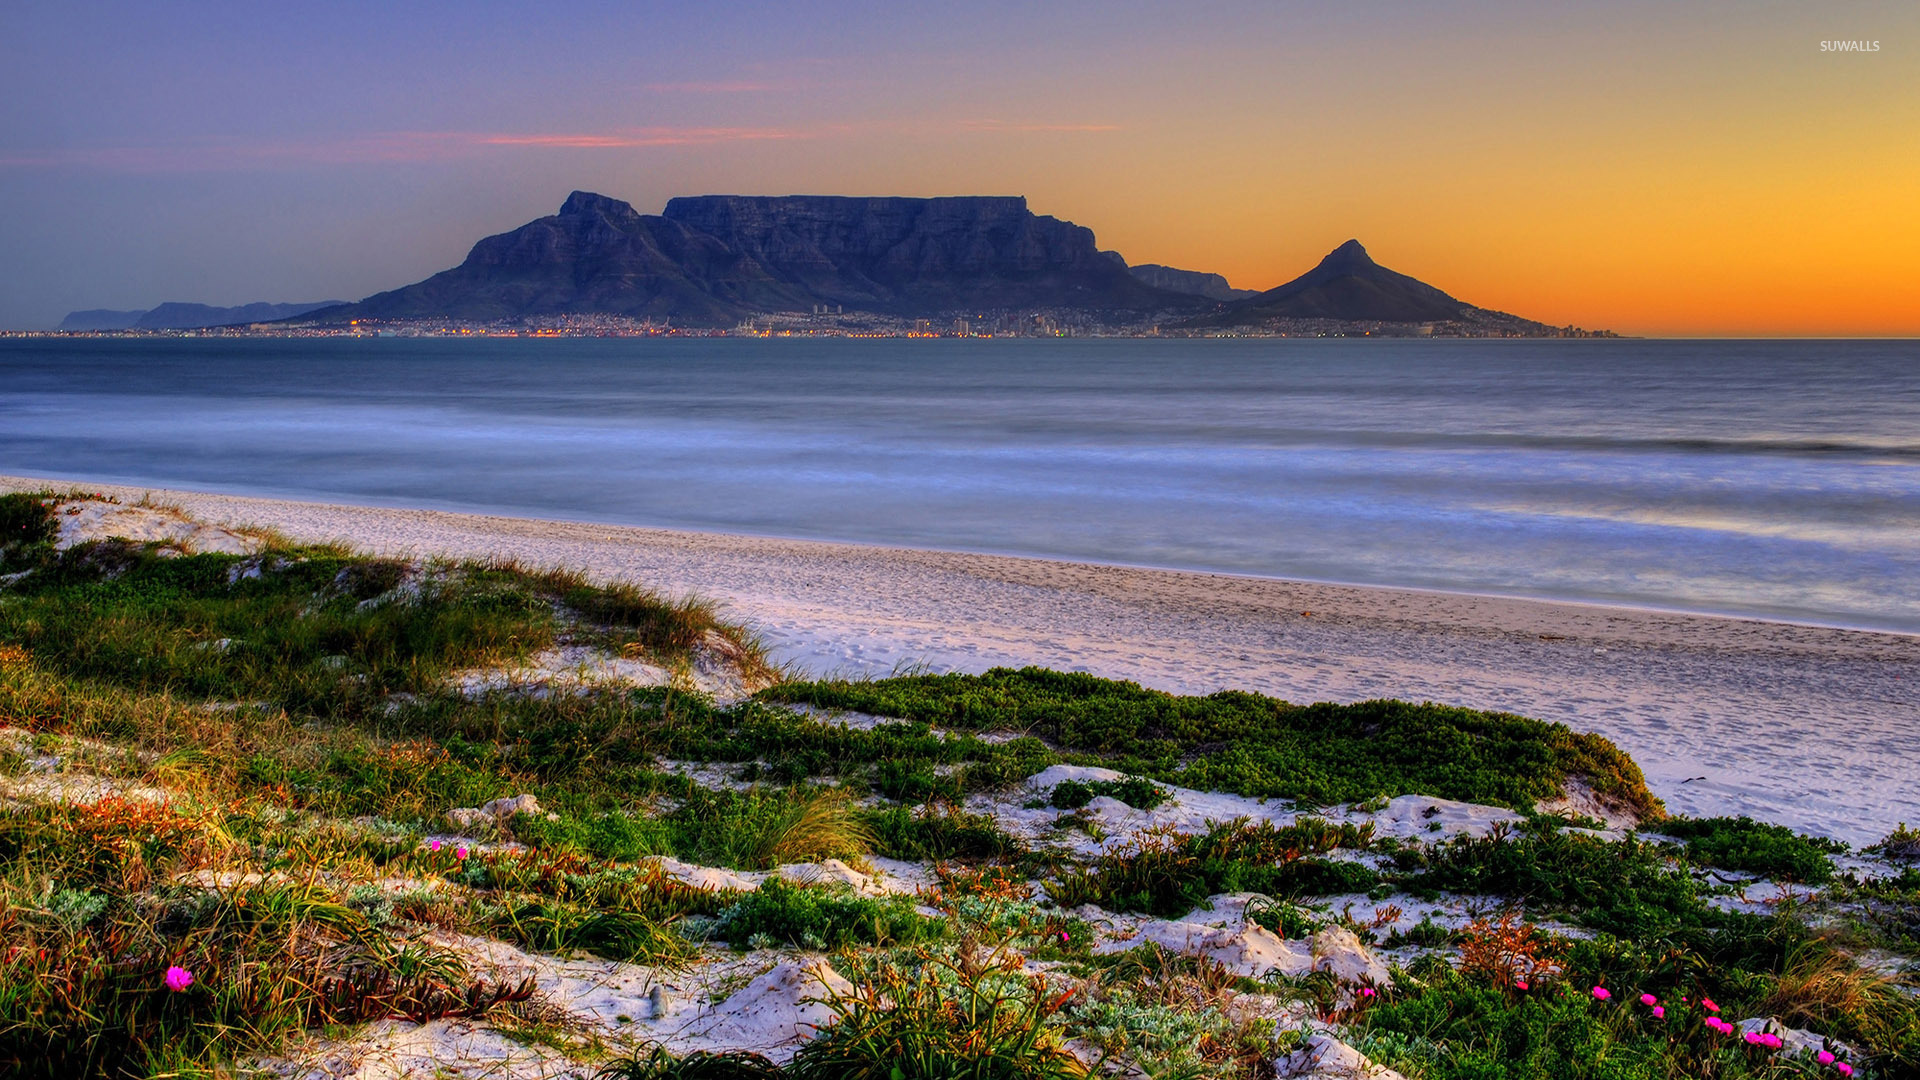 Cape Town Sunset Wallpaper Phone Is Cool Wallpapers Cape